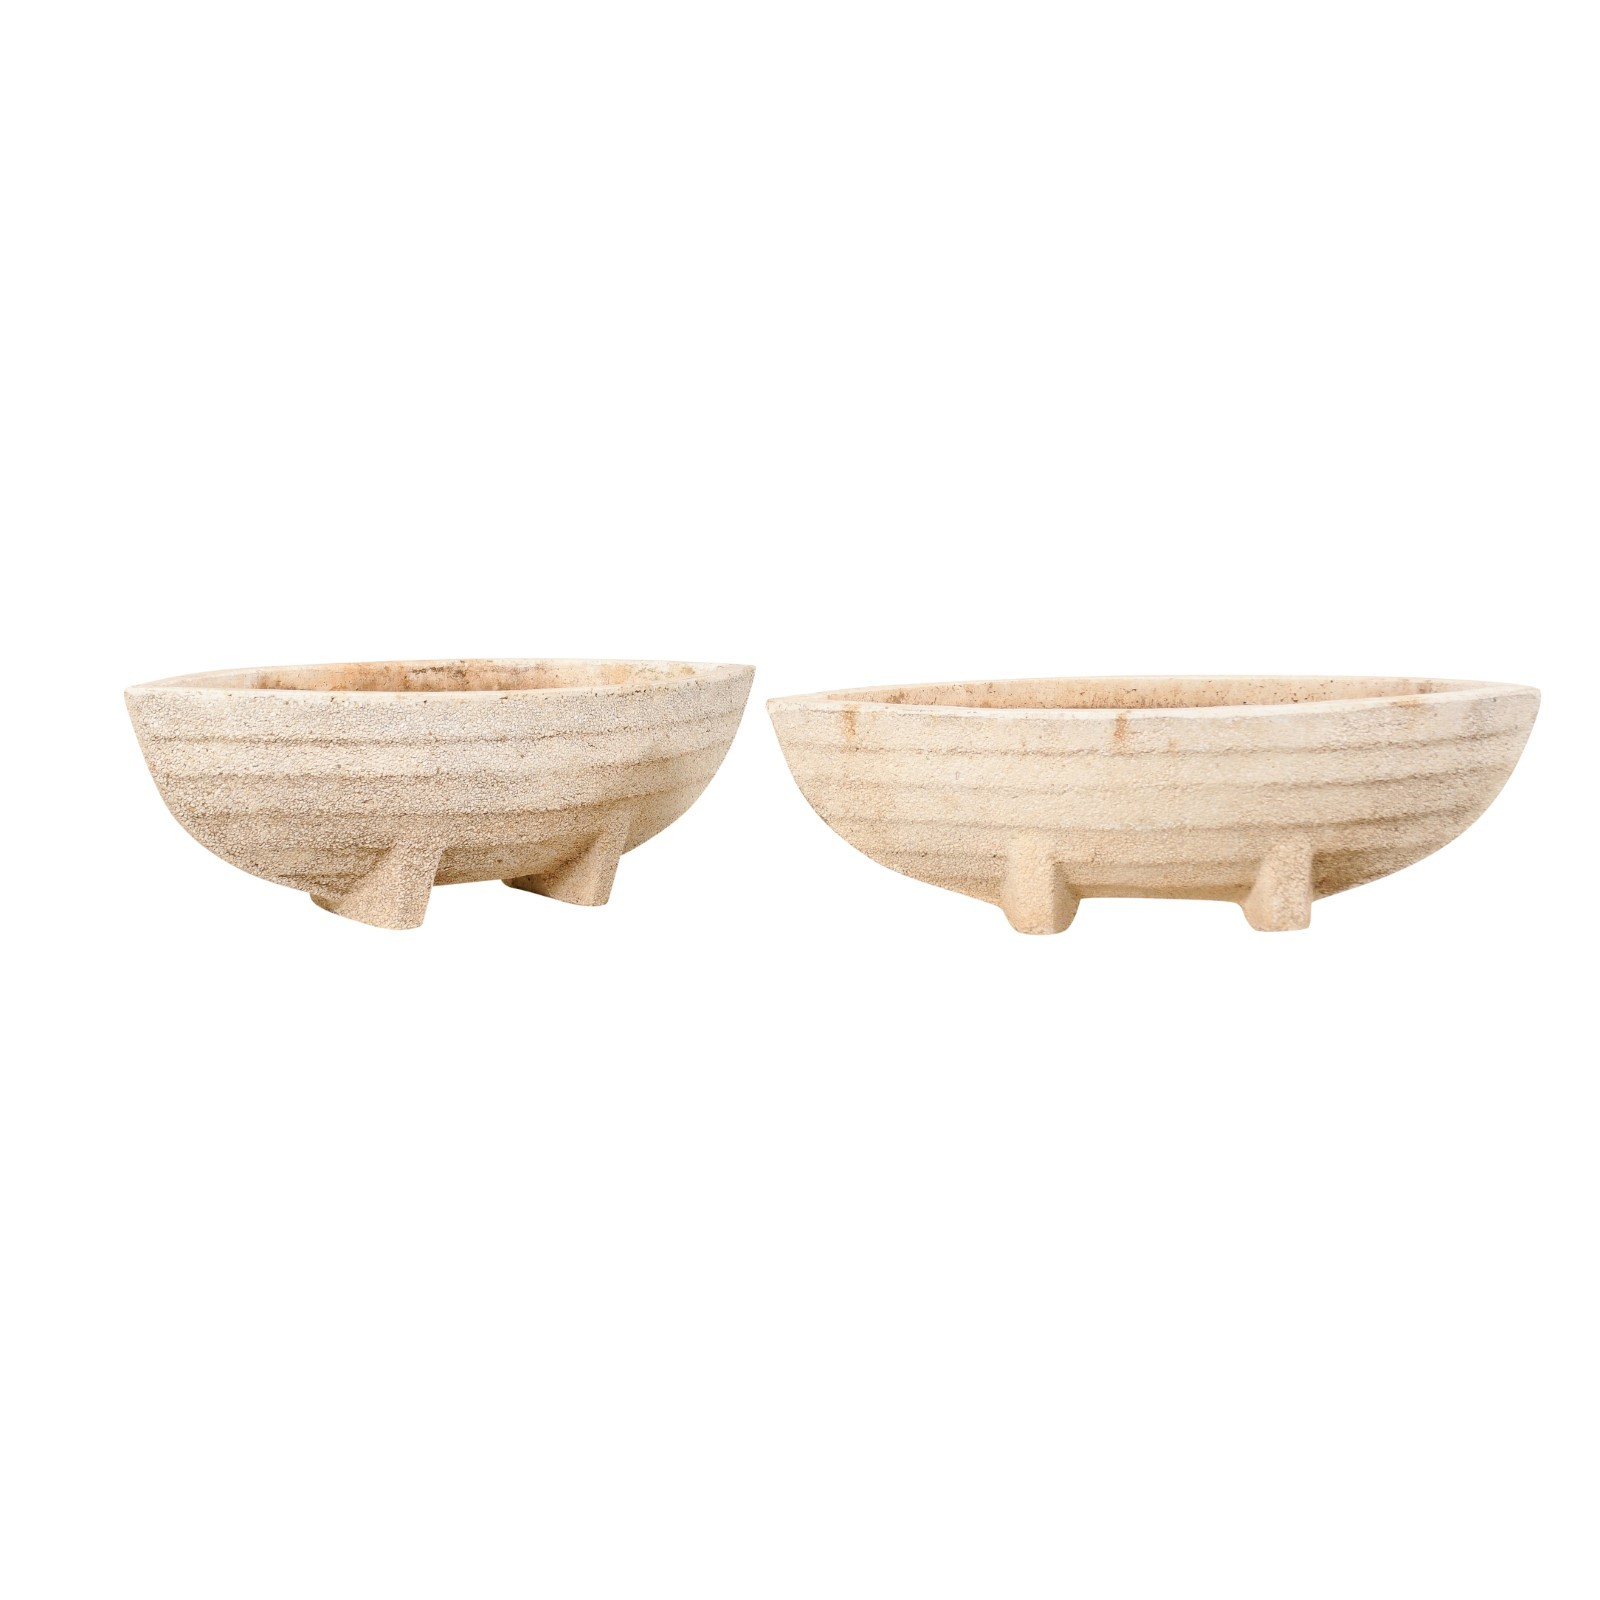 Pair European Boat Shaped Outdoor Planters